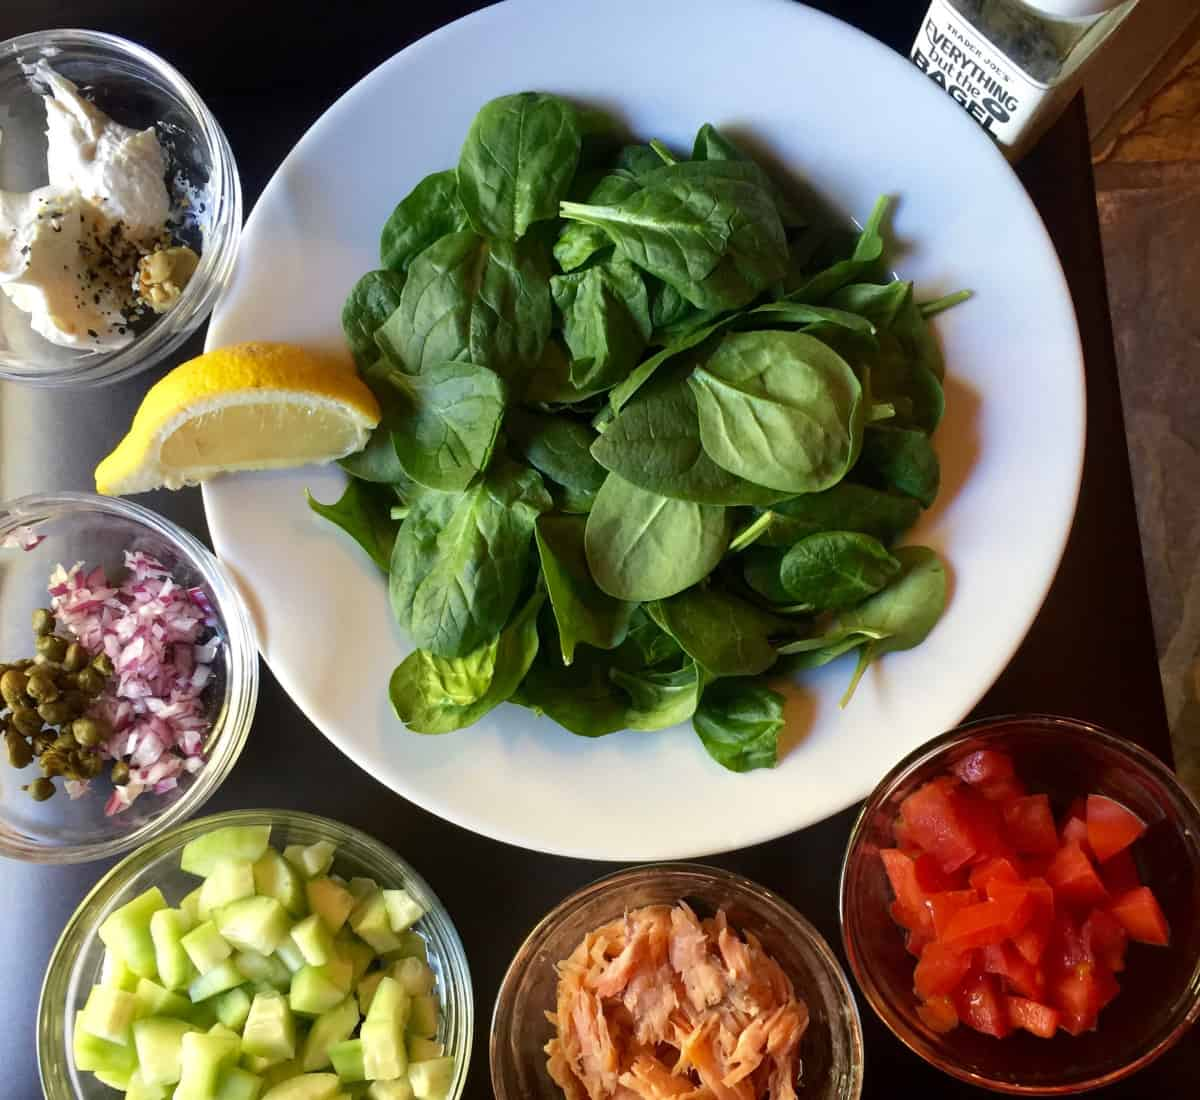 Baby spinach, cucumber, smoked salmon, tomato, red onion and capers for making salad.